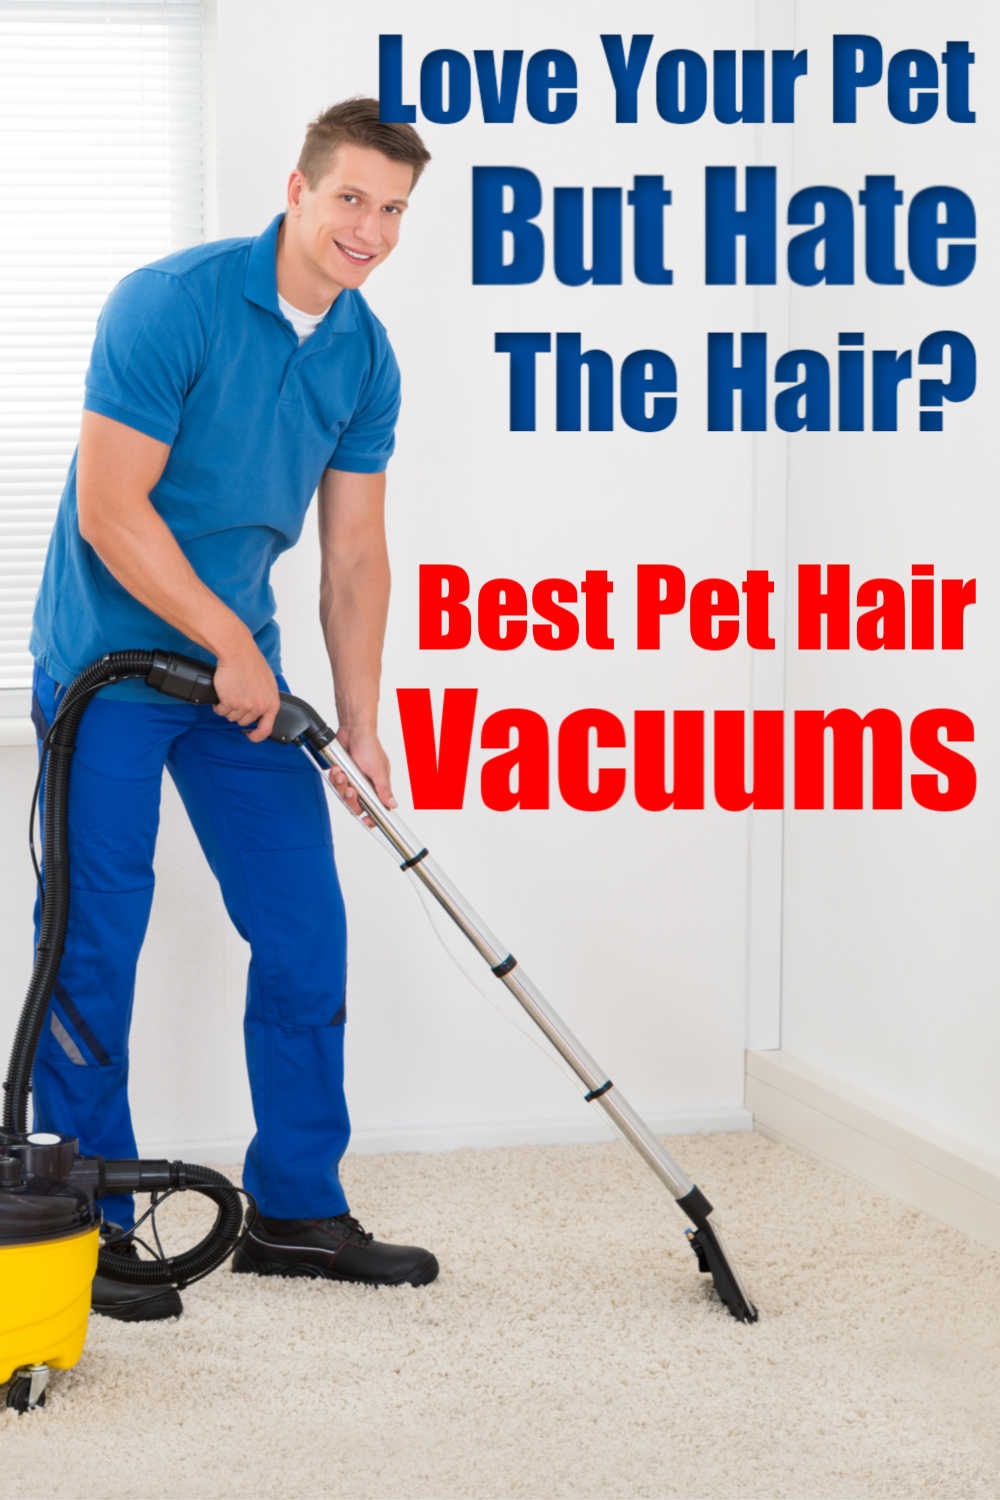 Best Pet Hair Vacuums For the Home